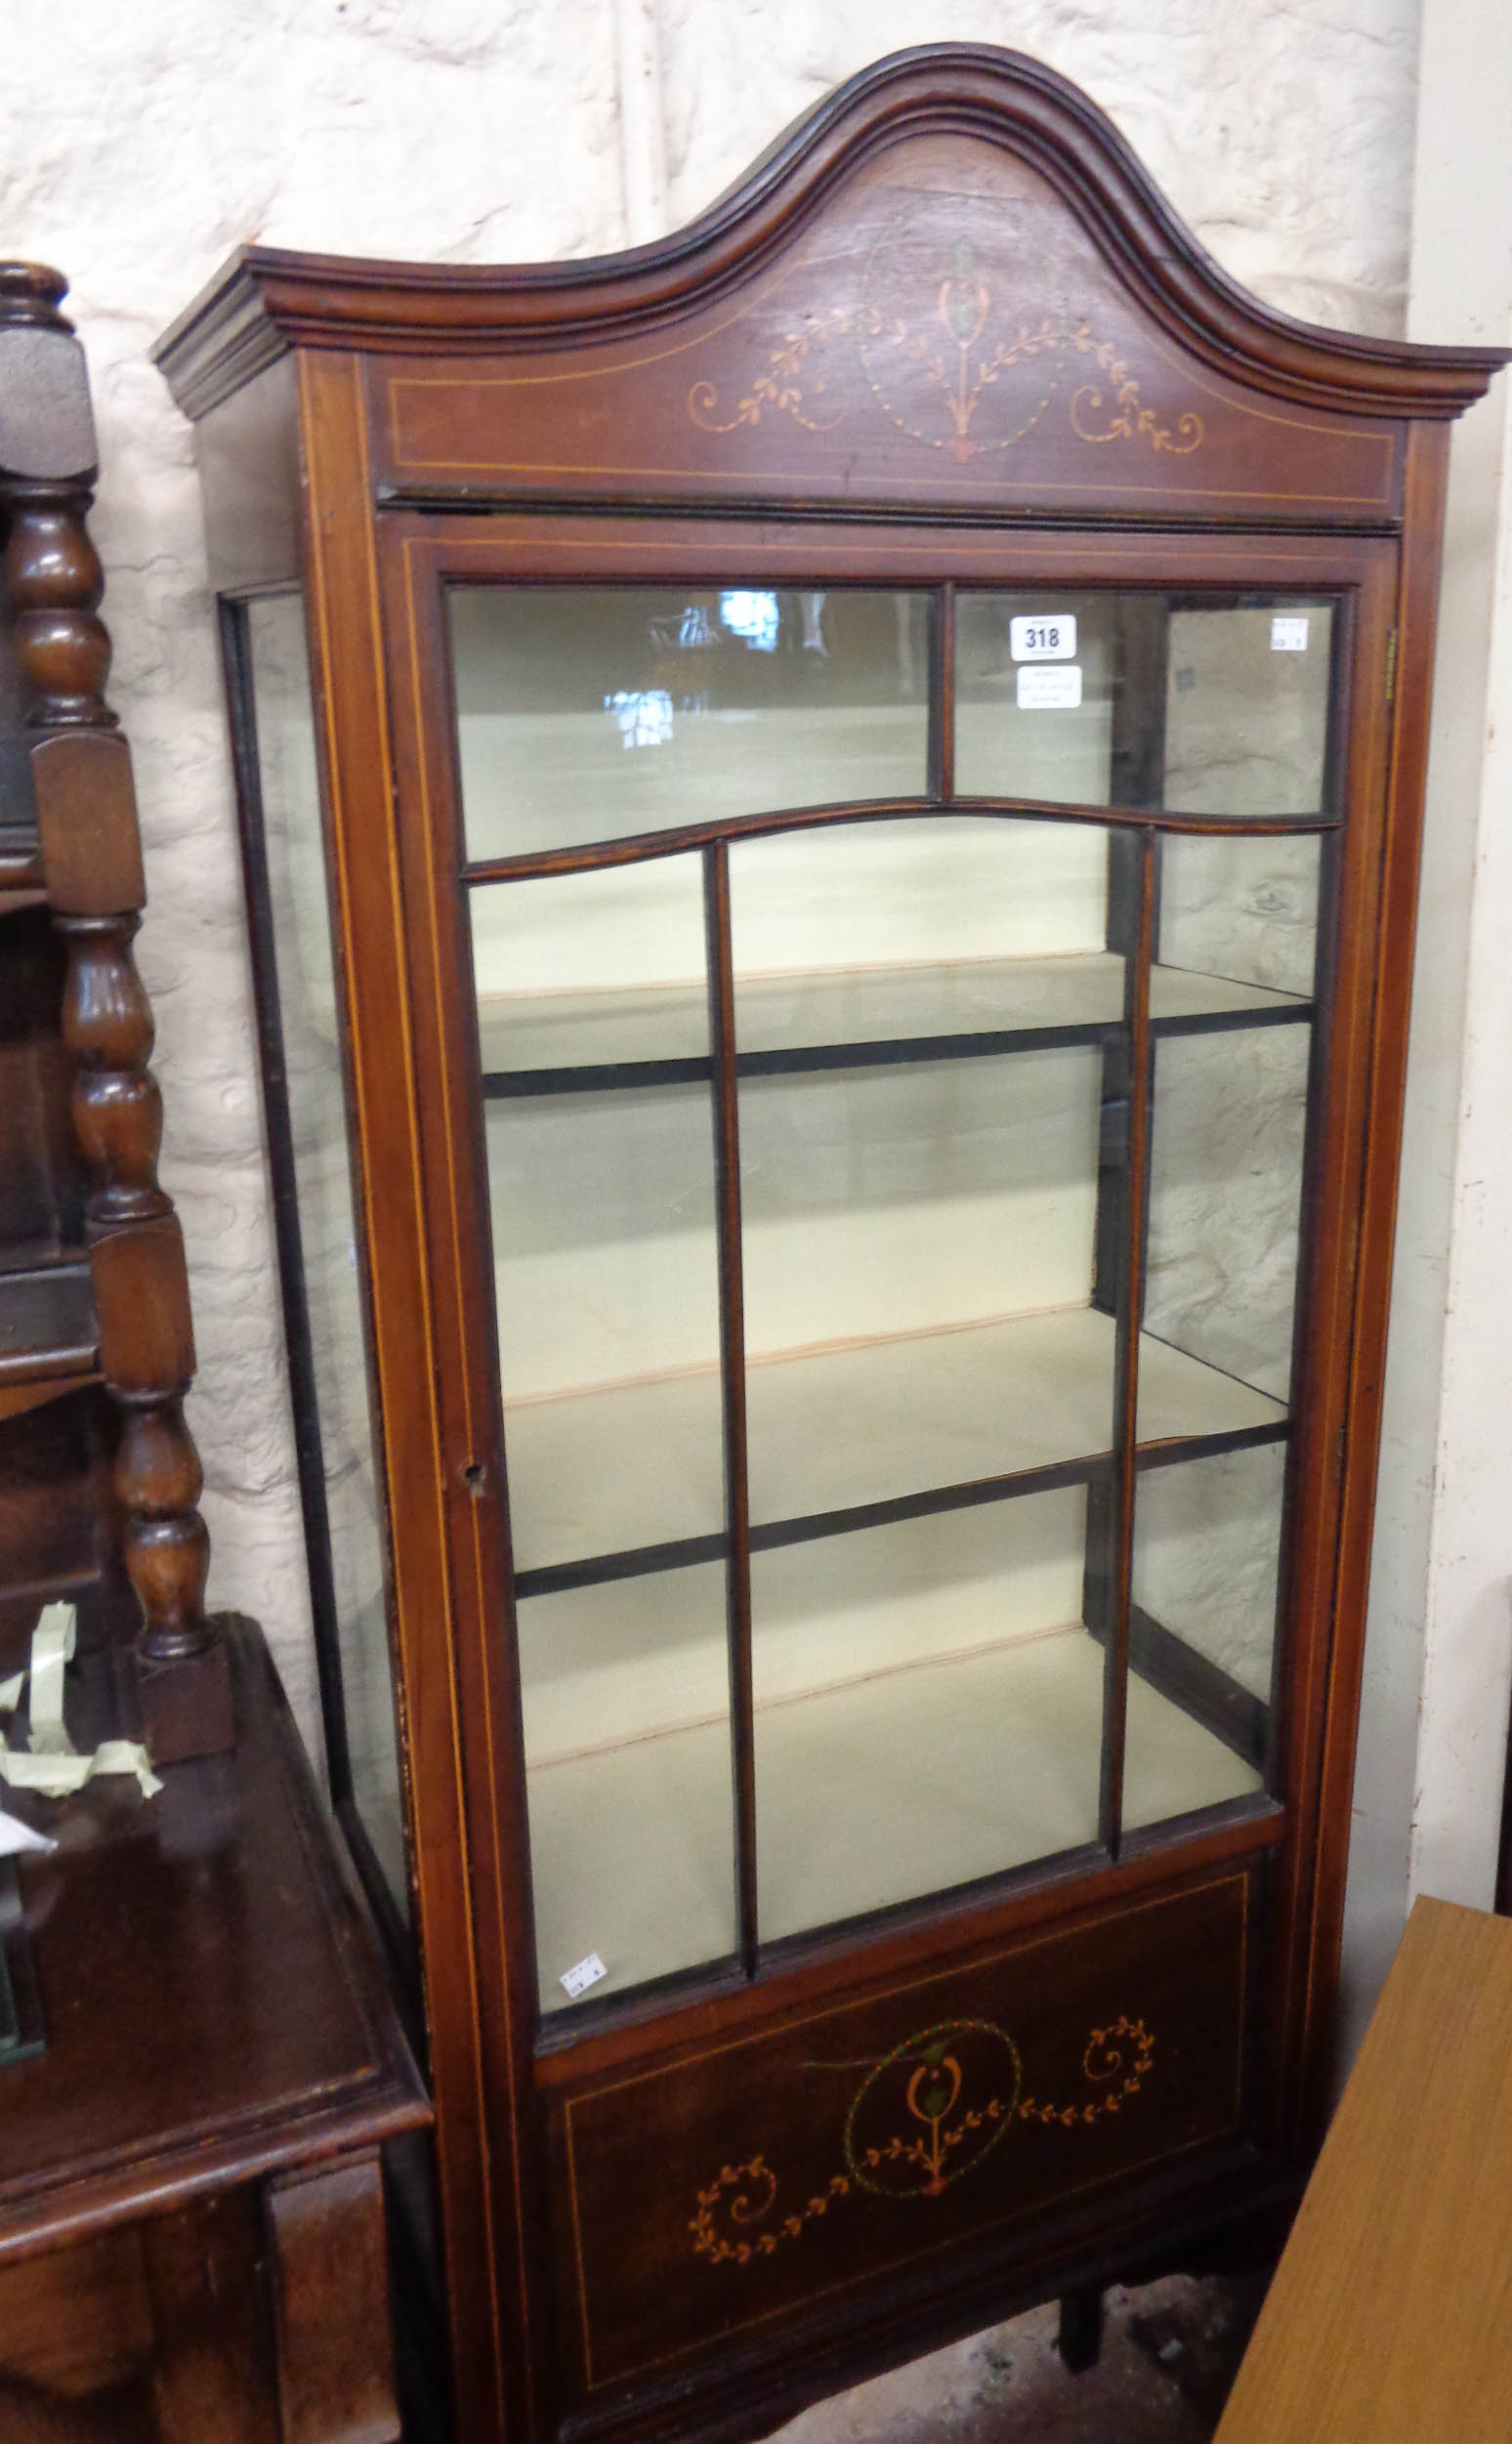 A 64cm Edwardian walnut and strung display cabinet with material lined interior enclosed by a glazed